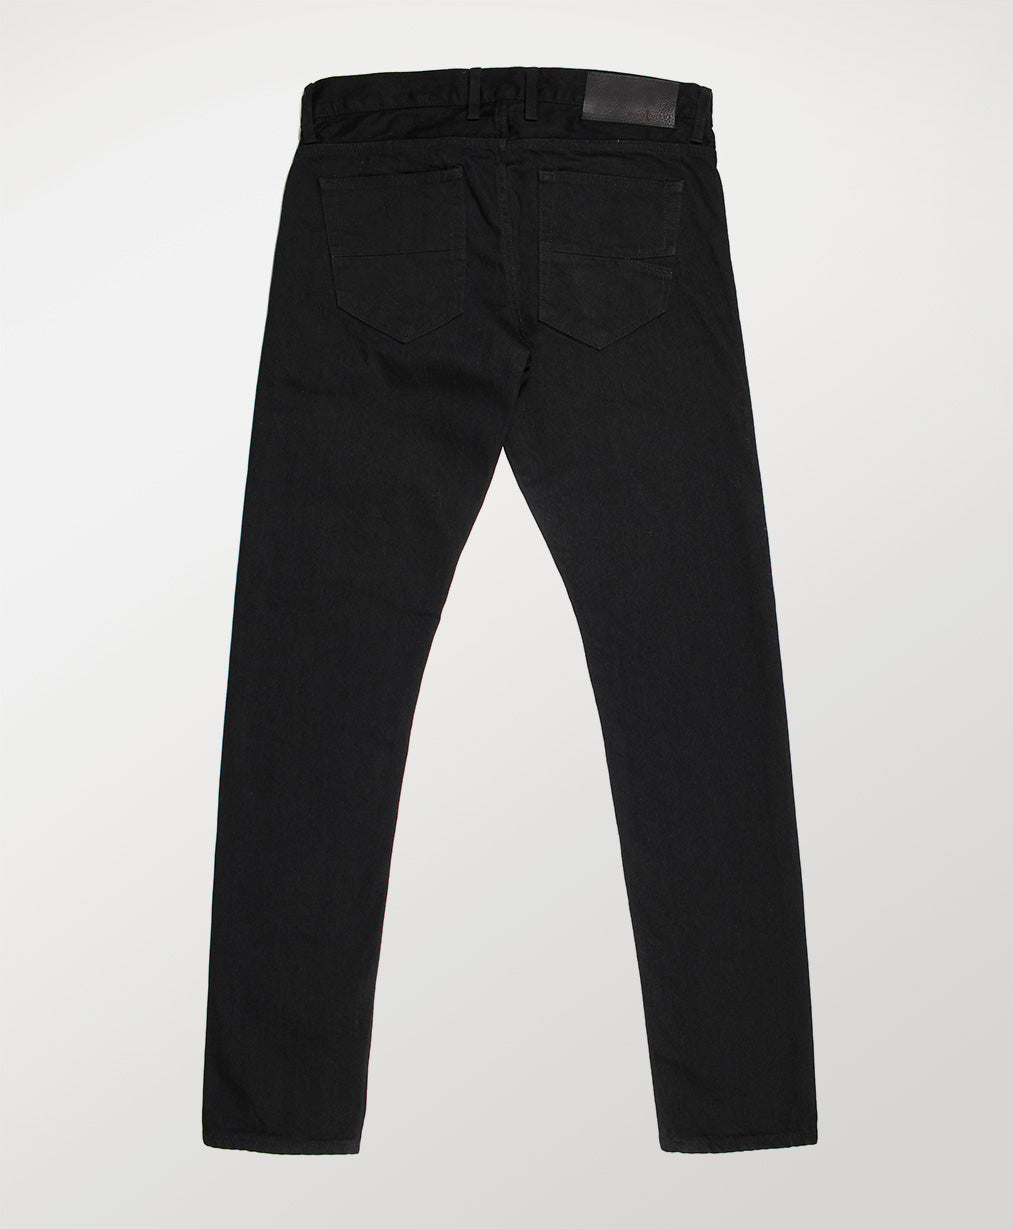 Mill Row - Rinse Stretch Black Denim Jeans